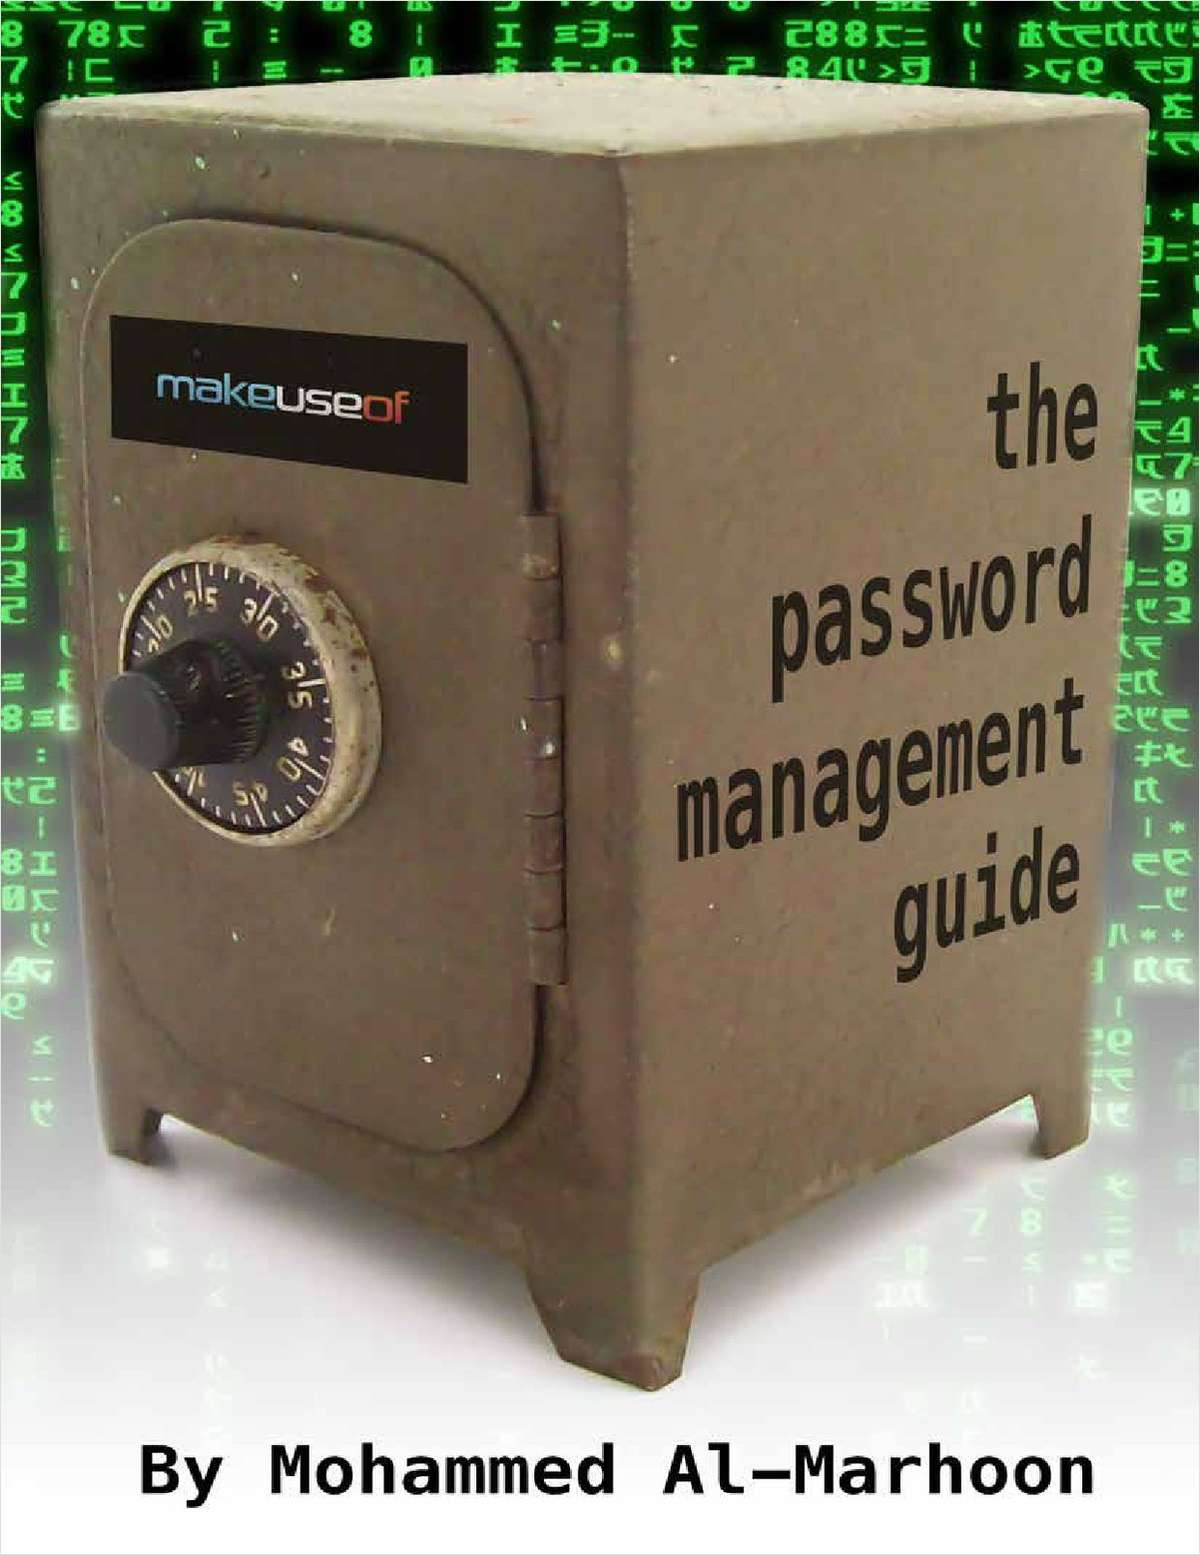 The Password Management Guide